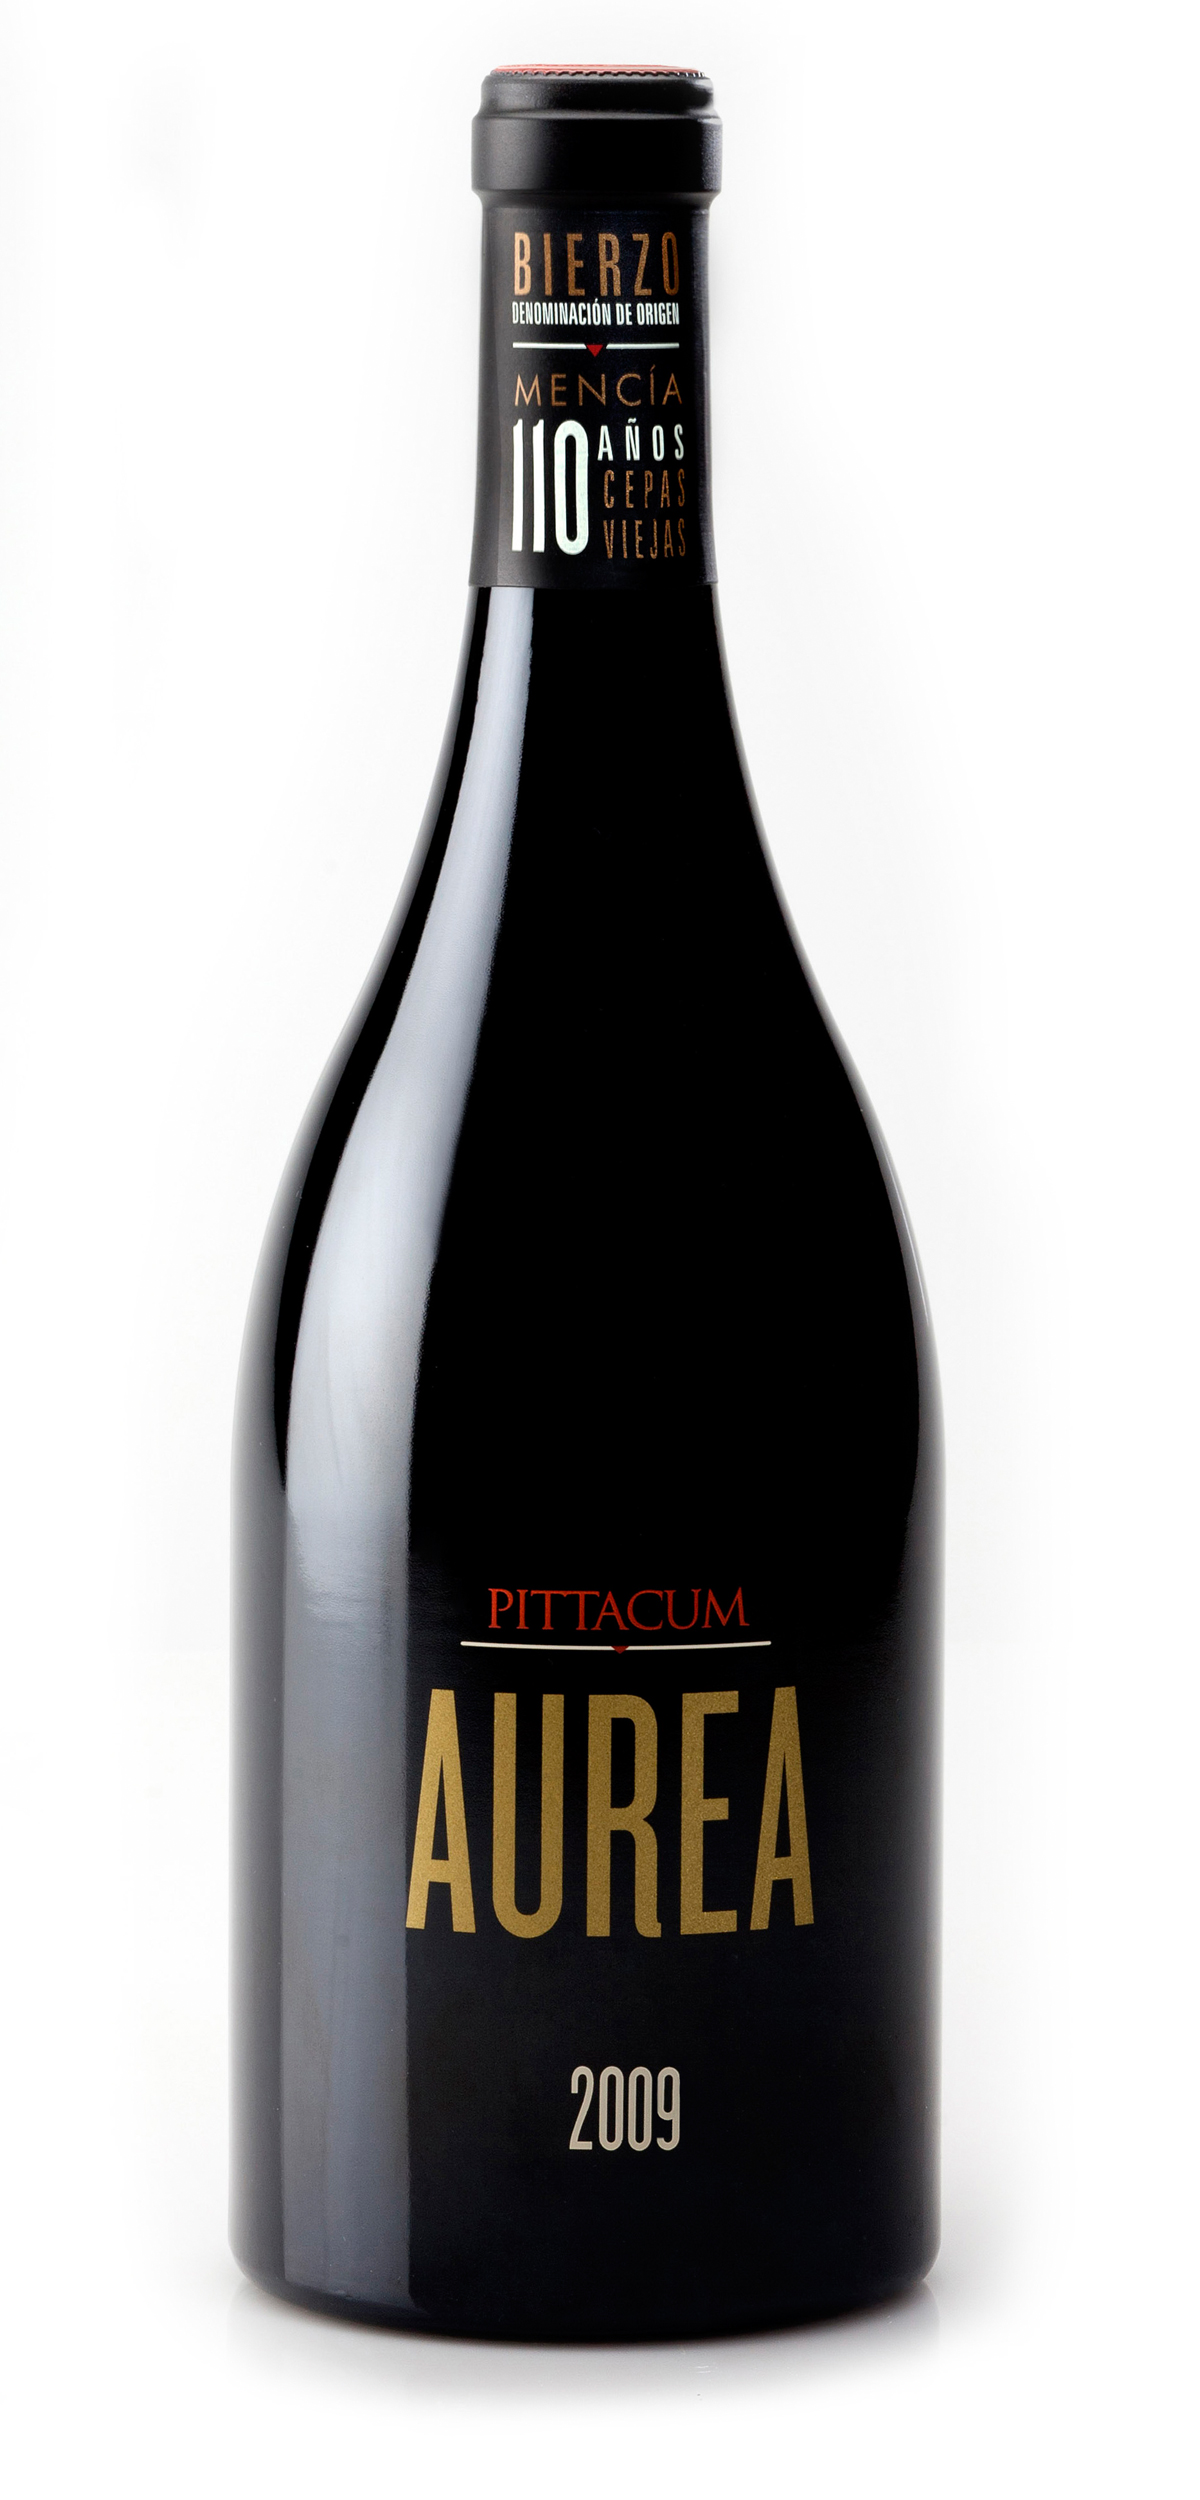 Pittacum Aurea wine bottle design